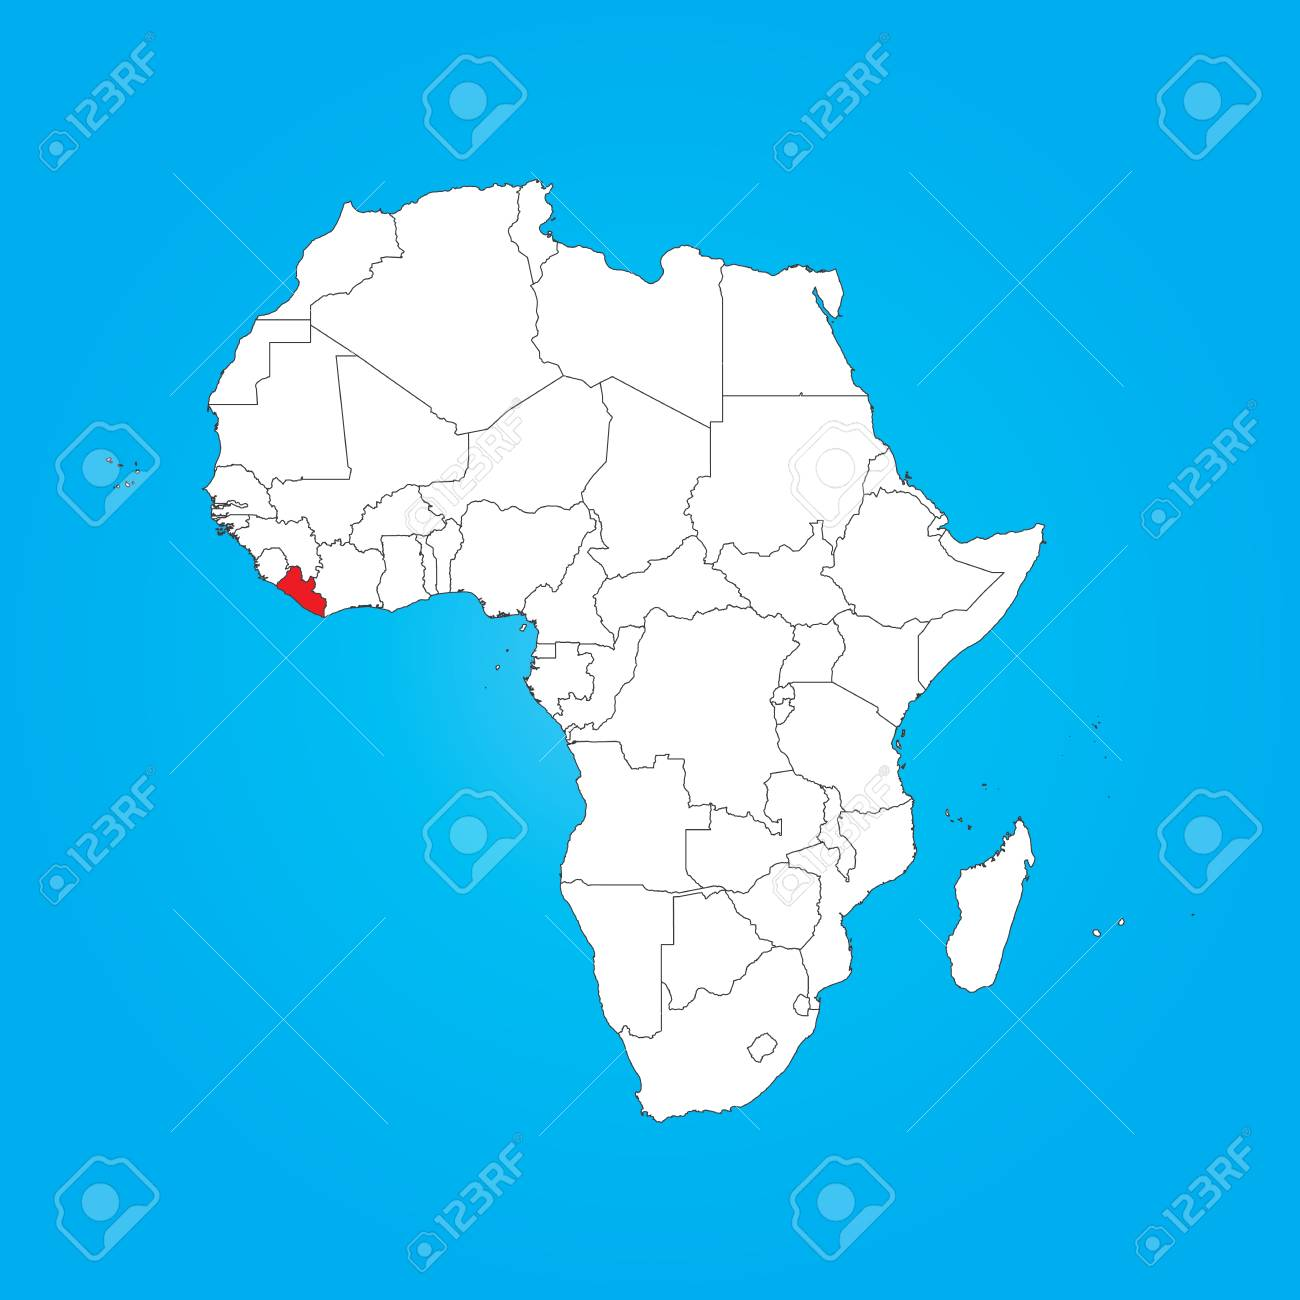 Liberia On Africa Map.A Map Of Africa With A Selected Country Of Liberia Stock Photo